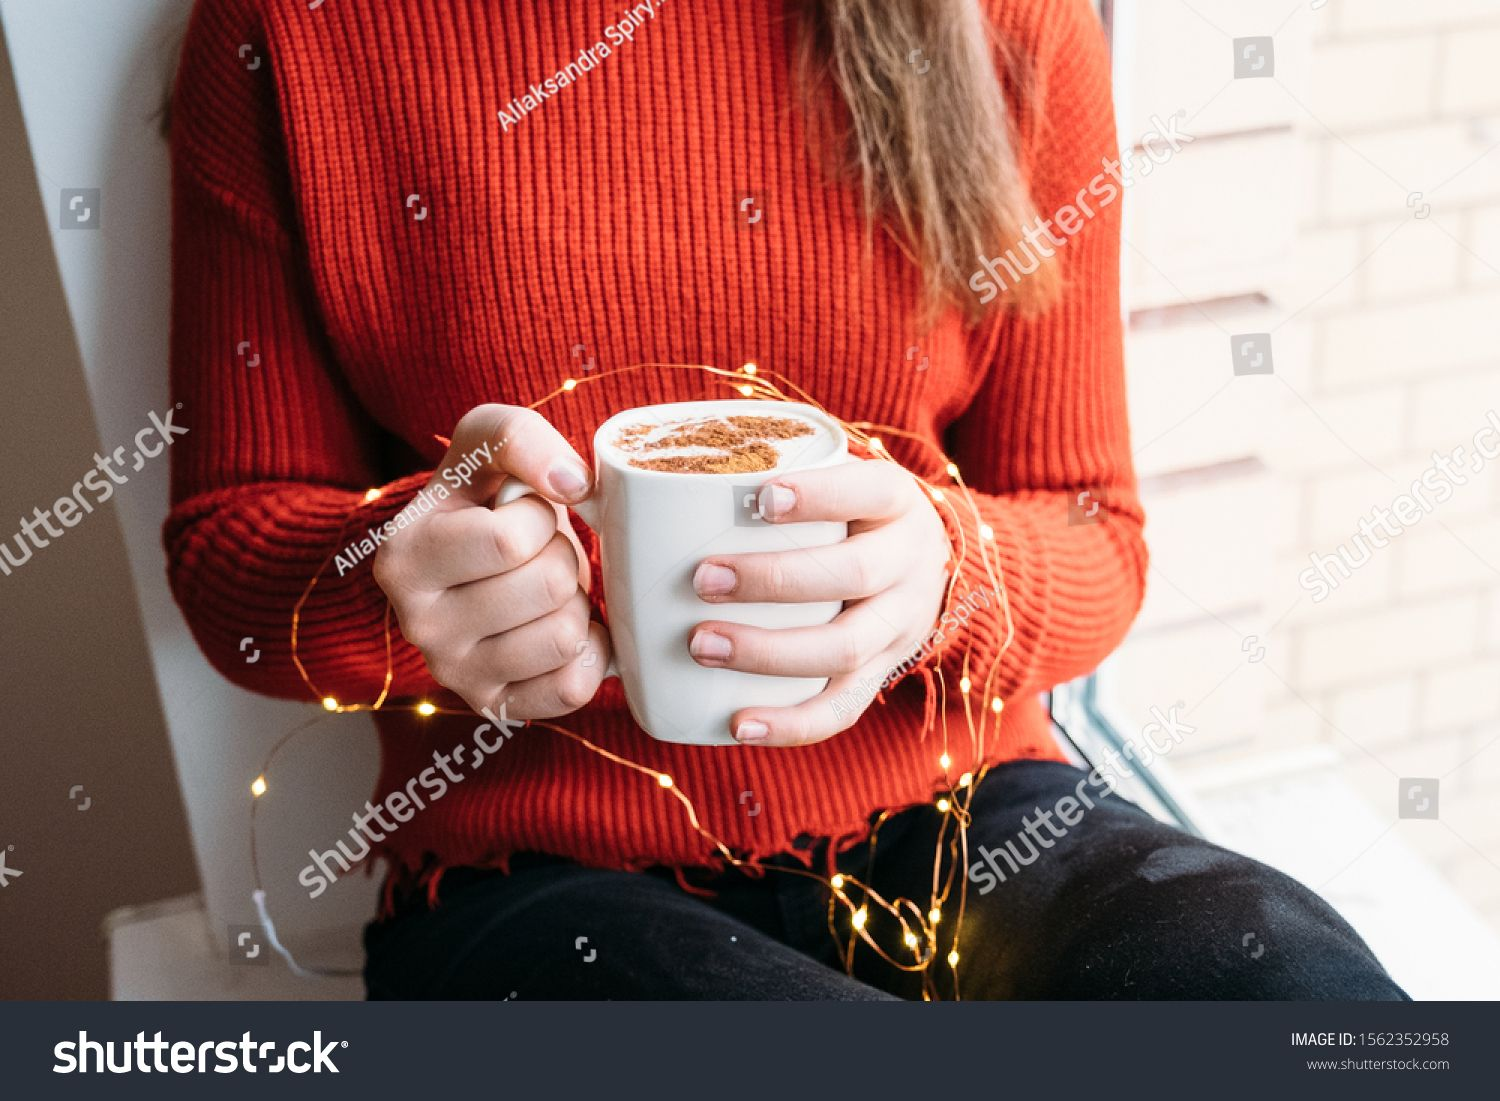 Christmas Decor A Girl In A Red Sweater Drinks Coffee Capuccino With Cinamon Garland Lights Holiday Mood White Red Sweaters Sweaters Christmas Decorations Hd wallpaper red mug garland light